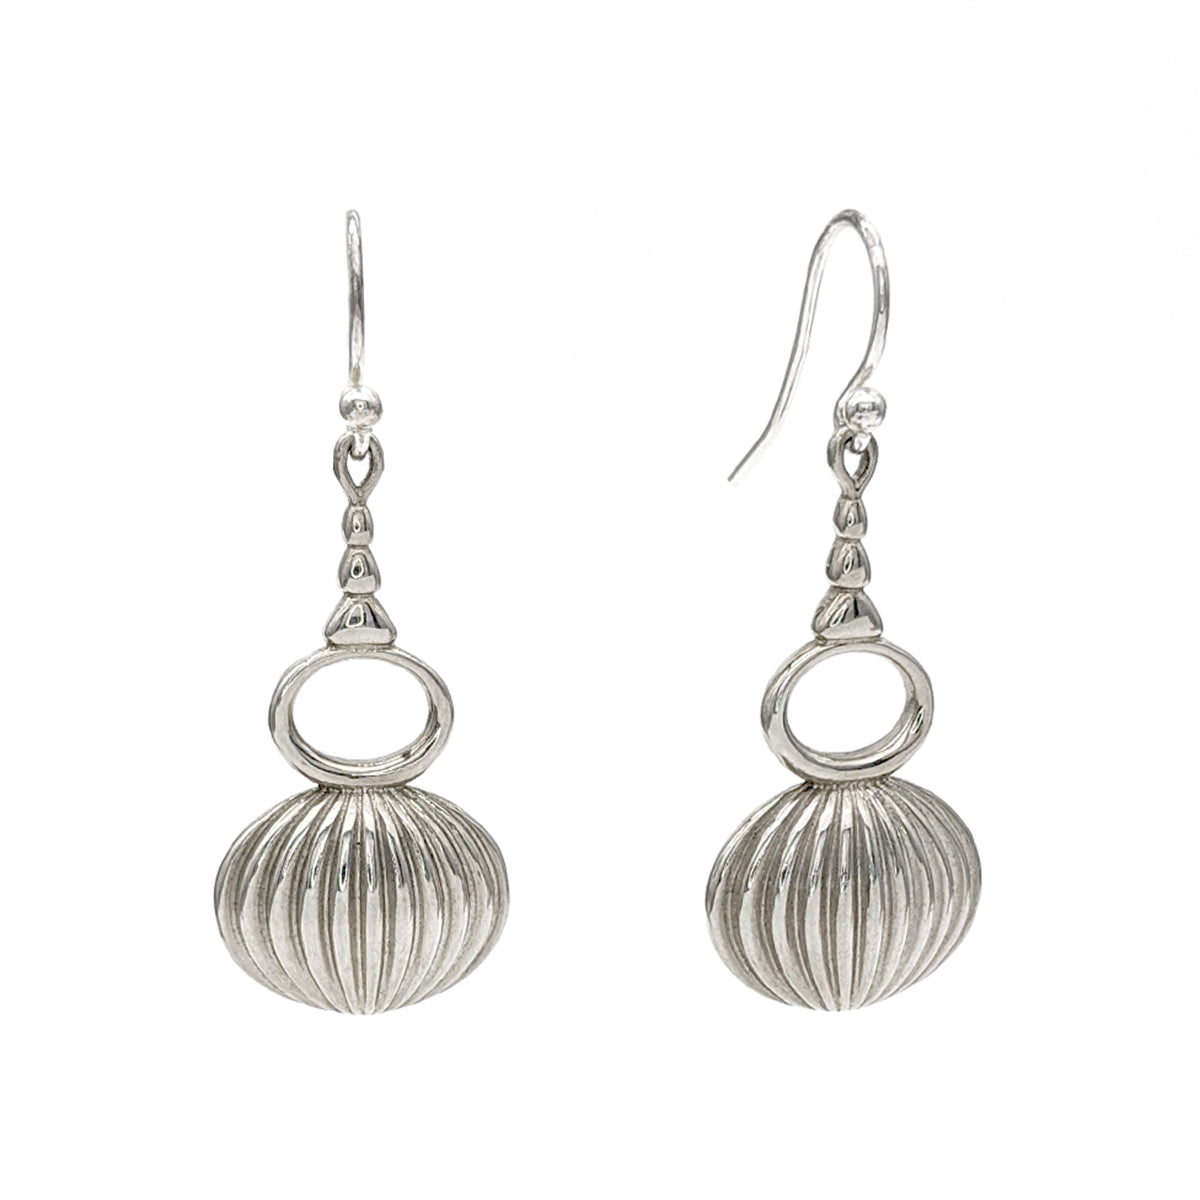 Sterling silver drop earrings with a horizontal, open oval and a ribbed oval on the bottom.